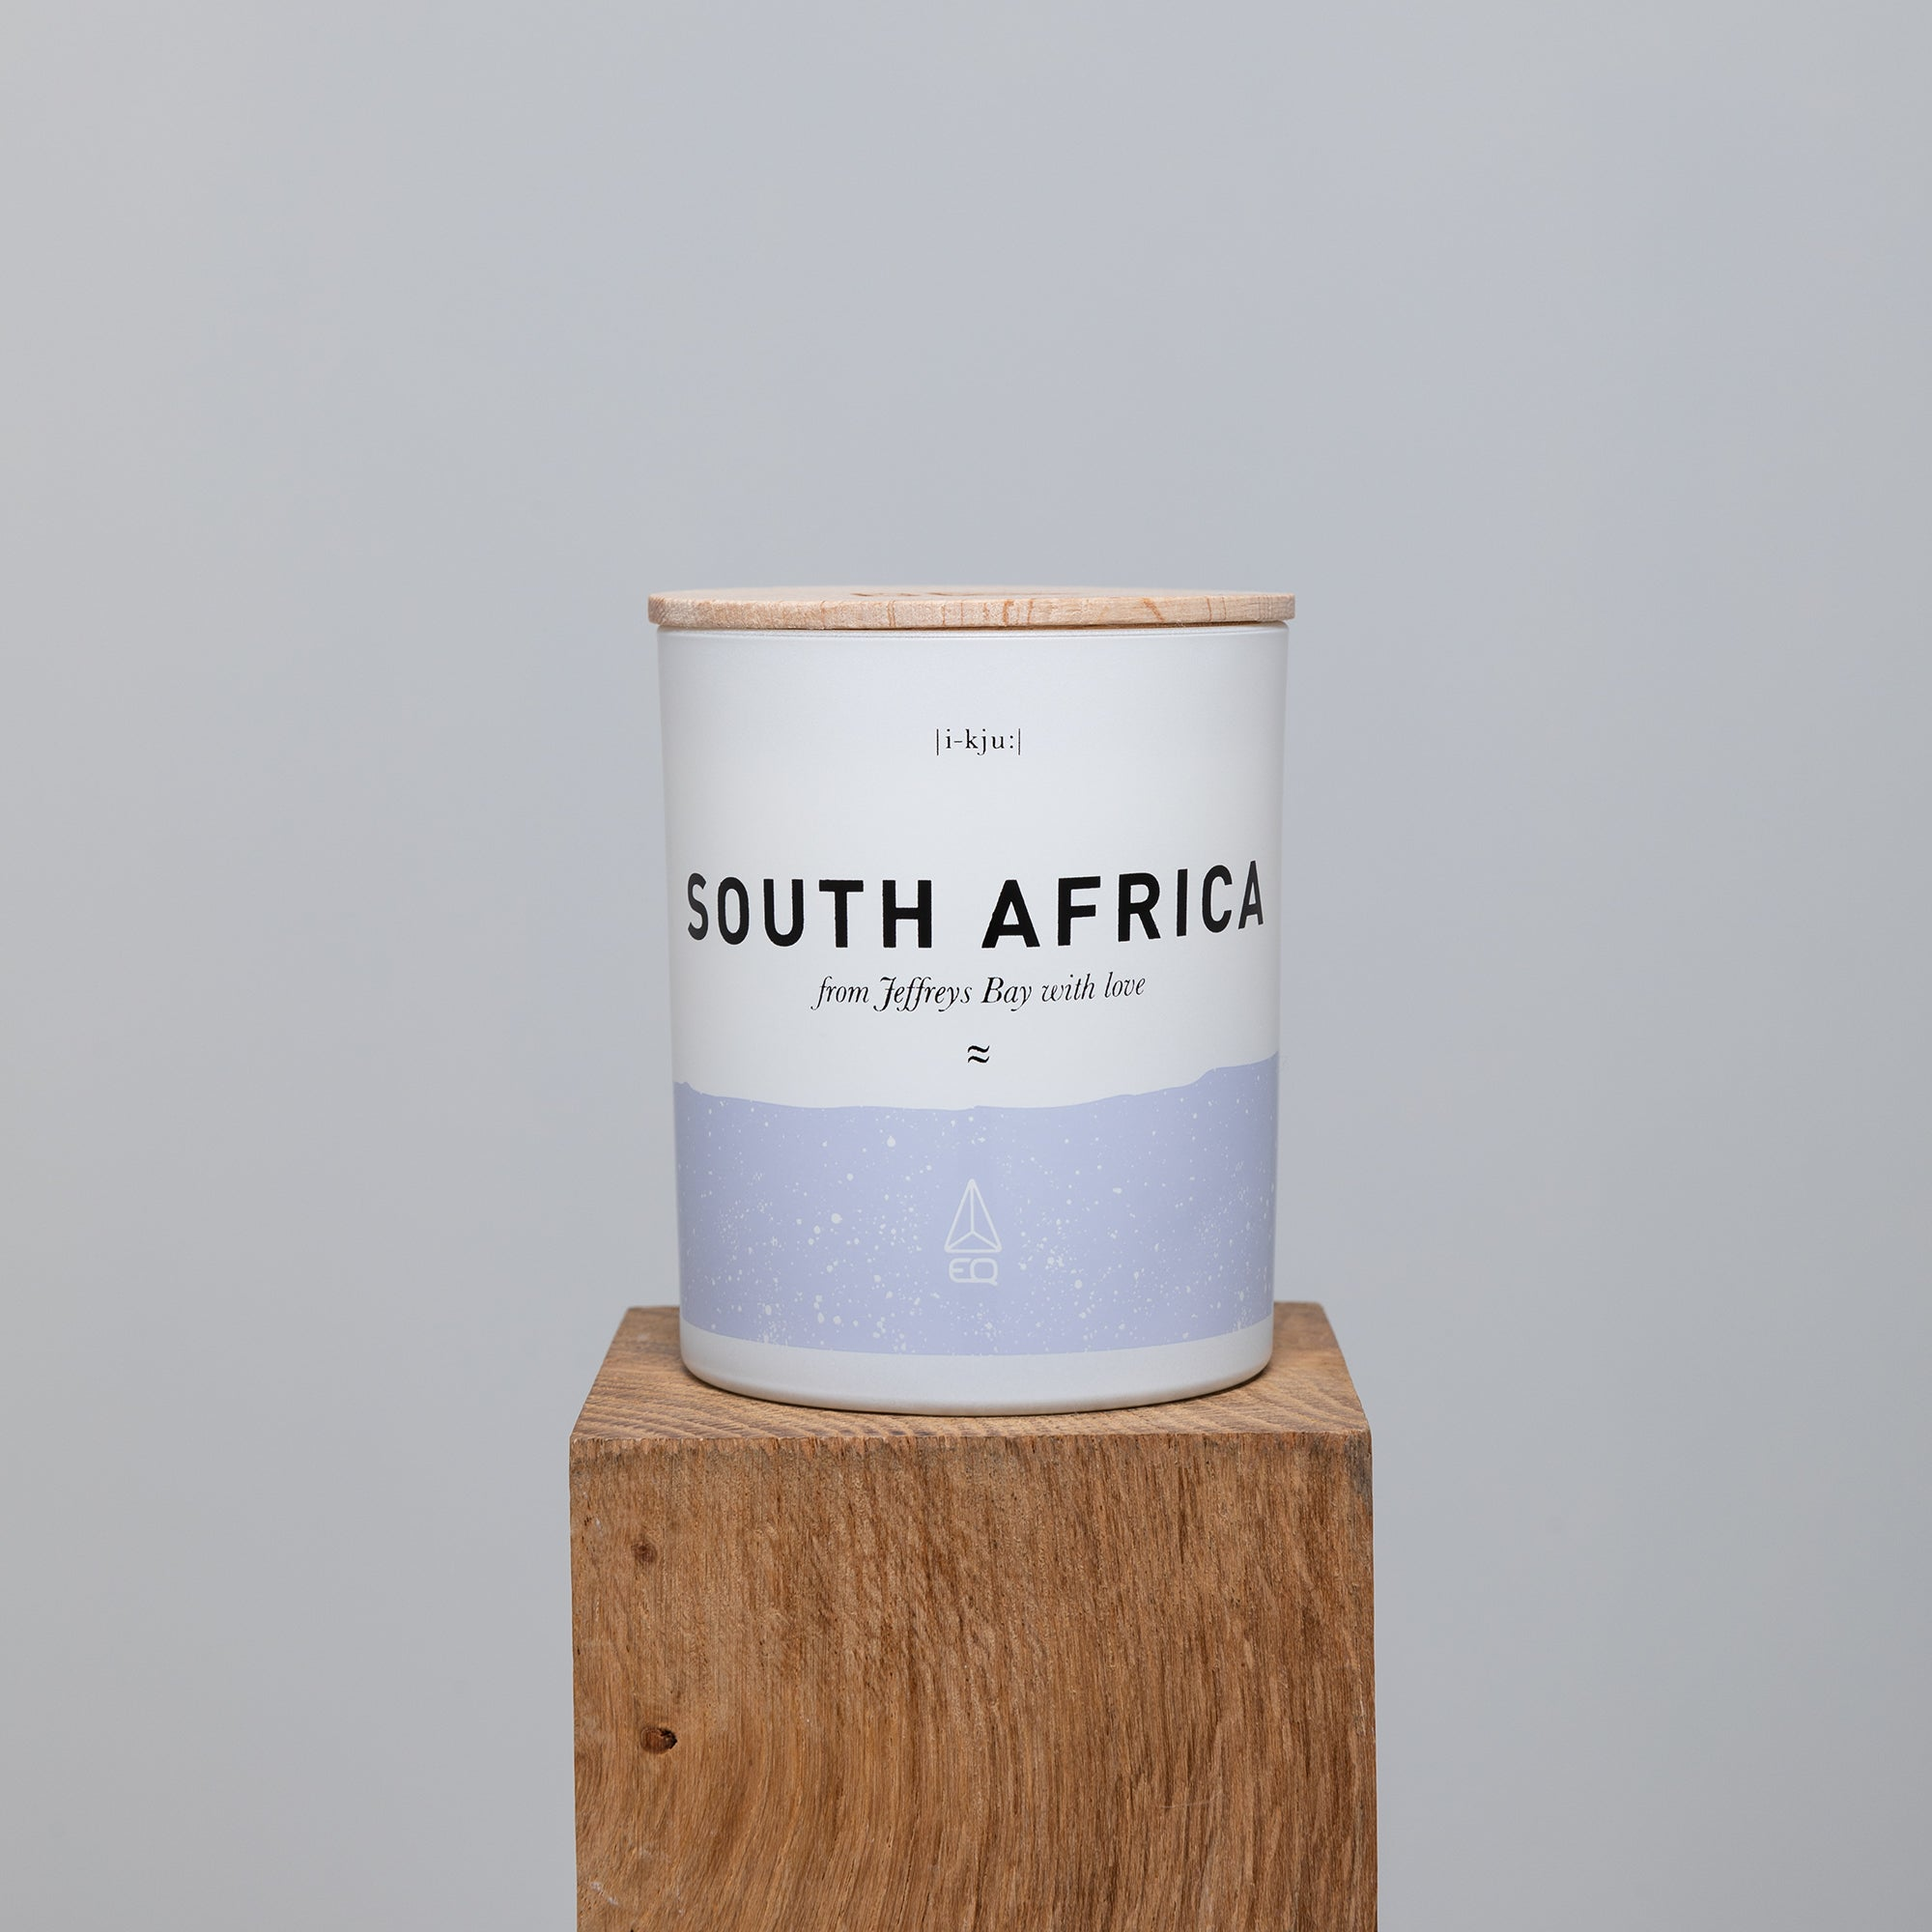 EQ Scented Candle - South Africa image 2